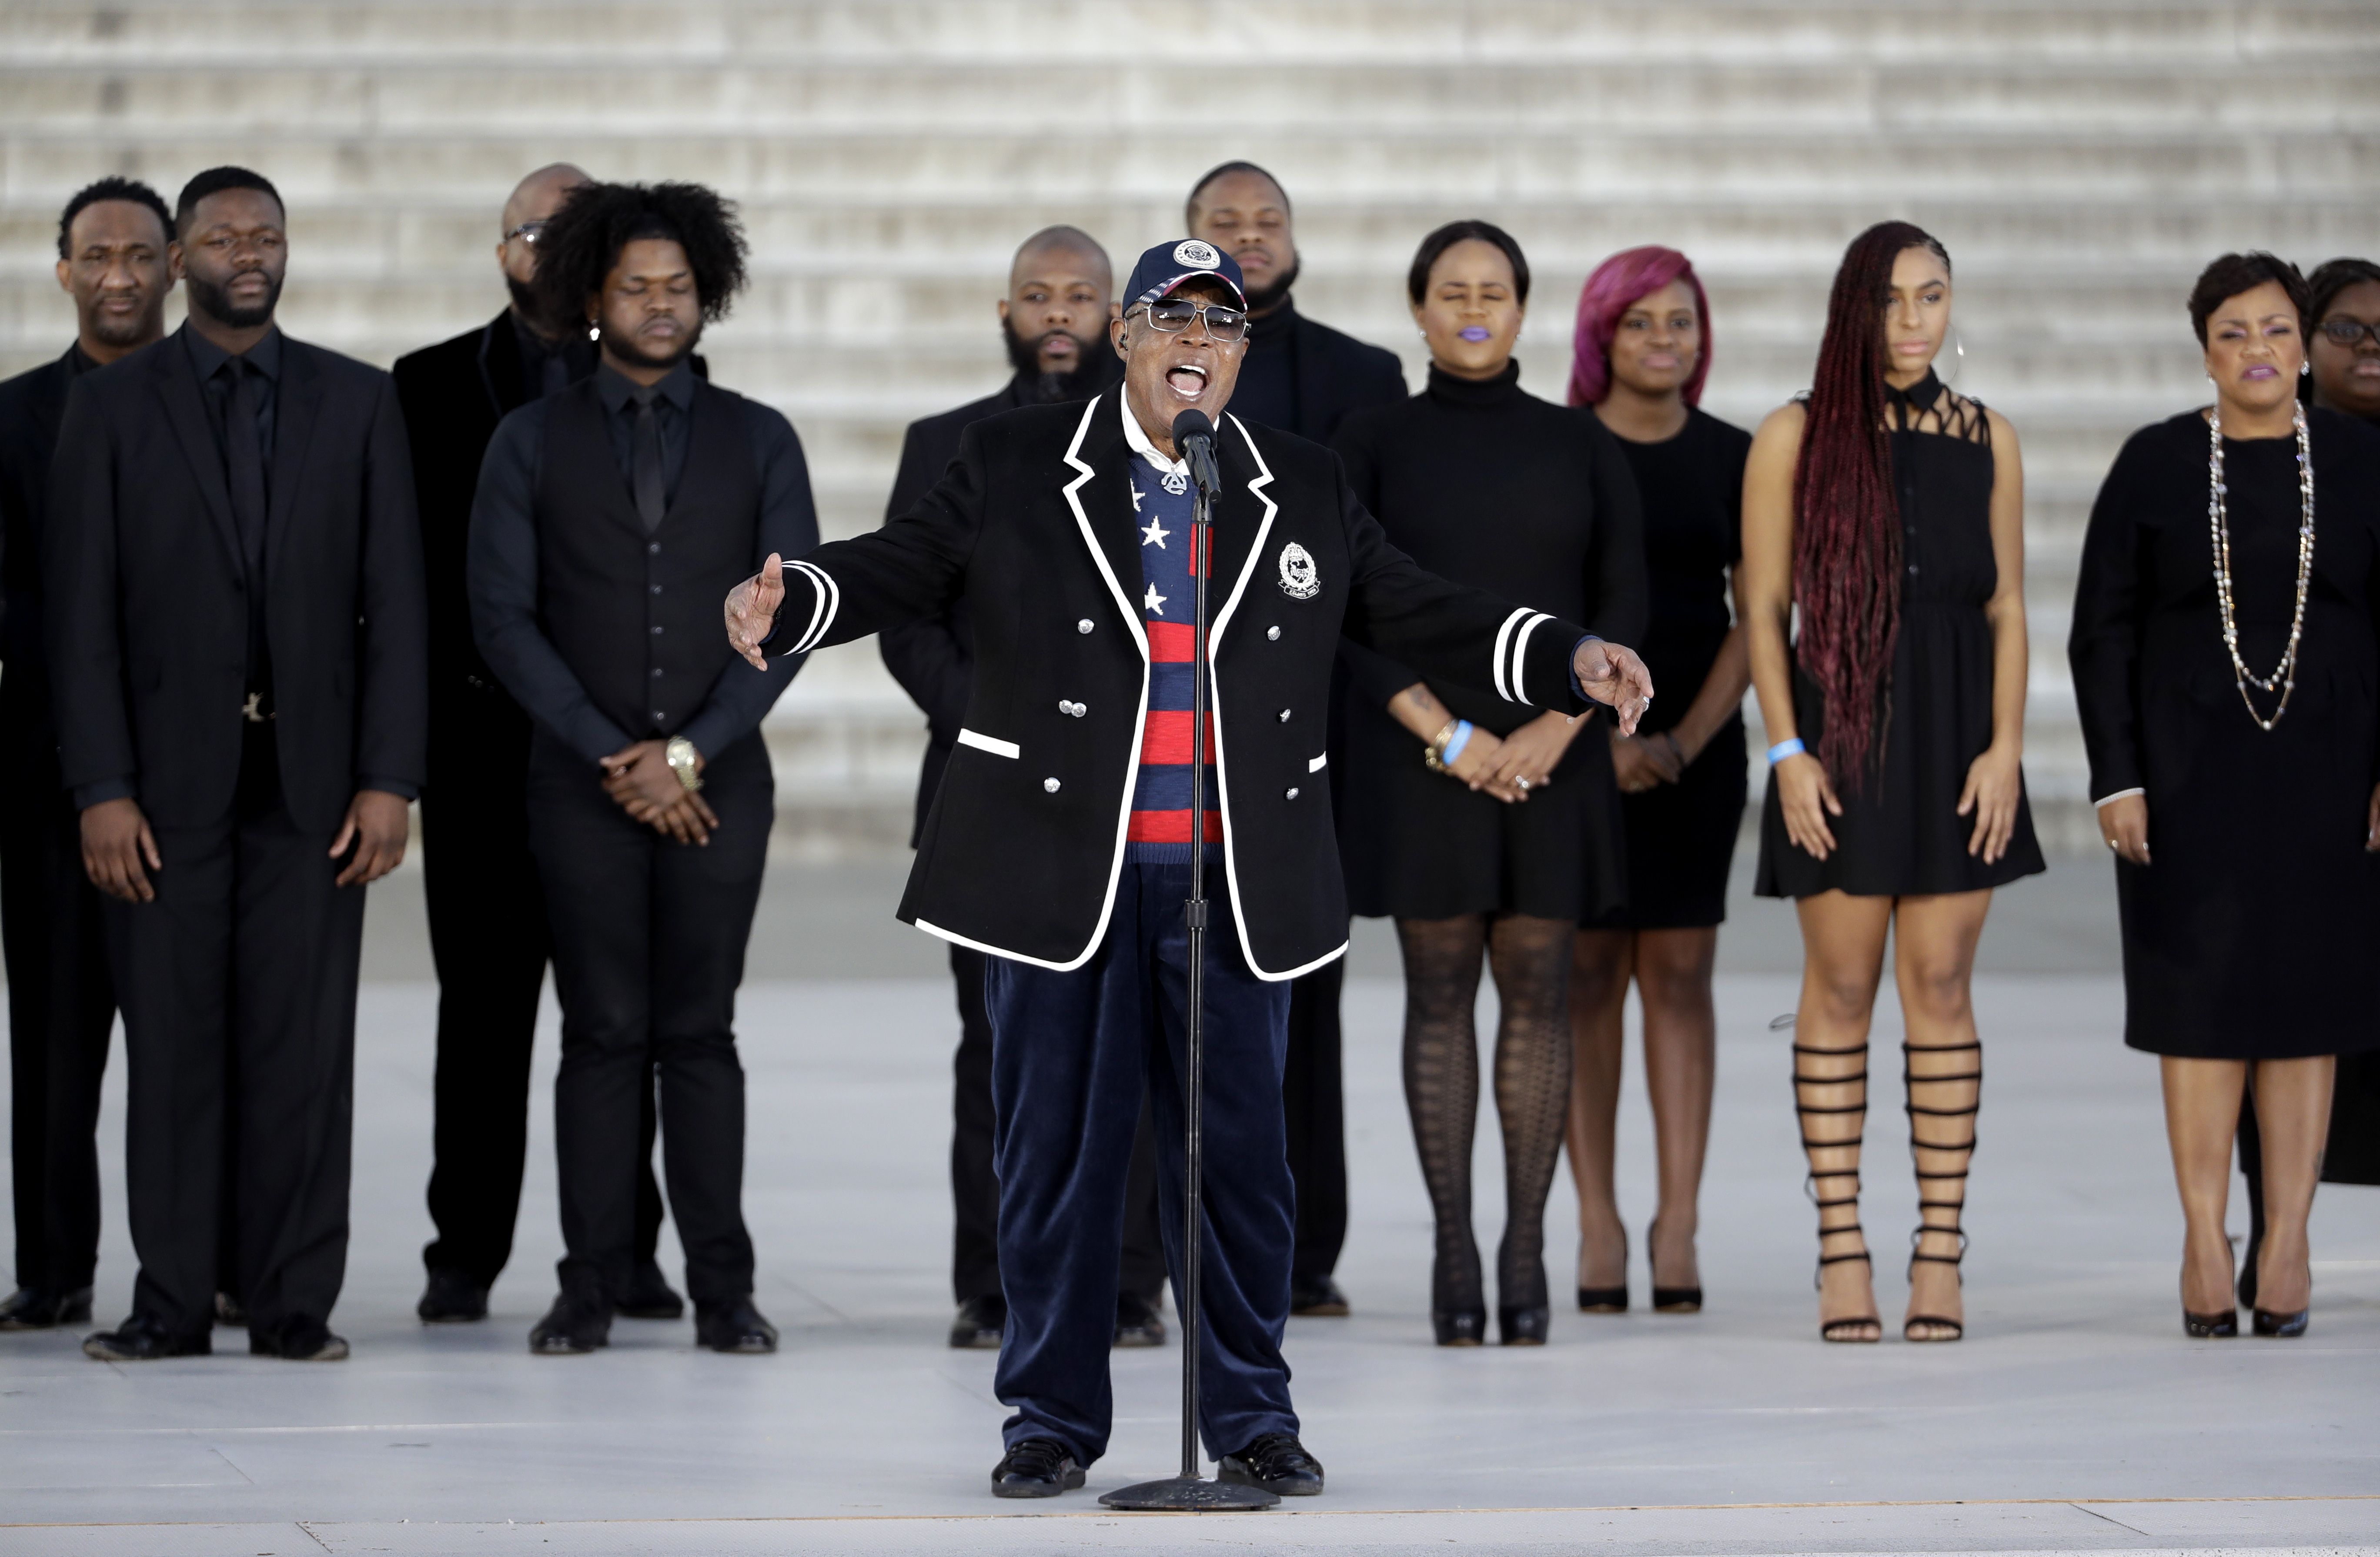 """Singer Sam Moore performs during a pre-Inaugural """"Make America Great Again! Welcome Celebration"""" at the Lincoln Memorial in Washington on Jan. 19, 2017. (AP Photo/David J. Phillip)"""